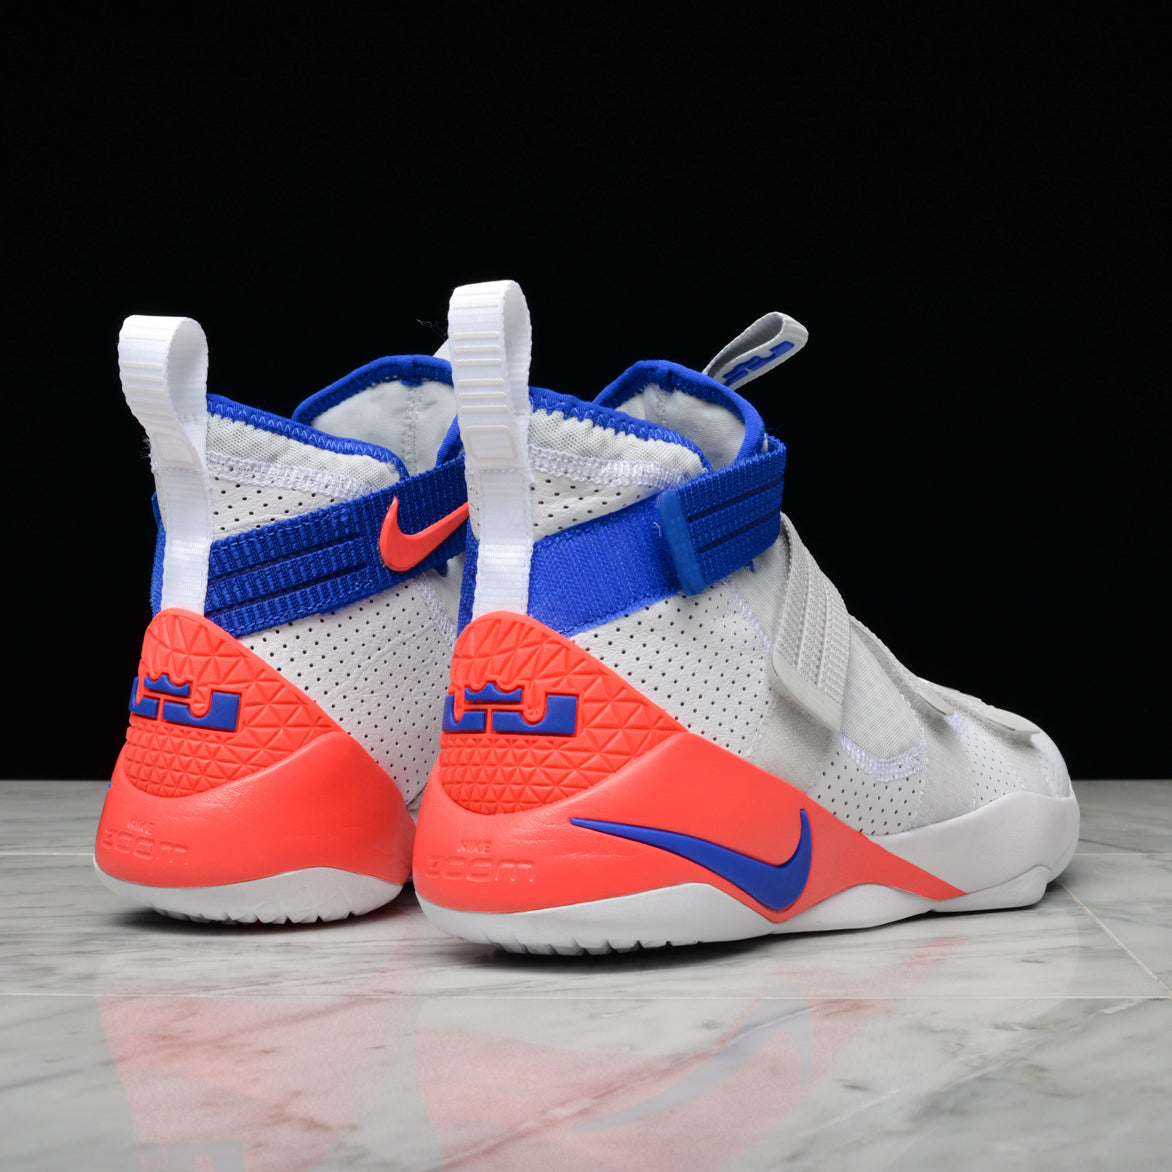 bce4612a58e ... LEBRON SOLDIER XI SFG - WHITE   RACER BLUE   INFRARED ...